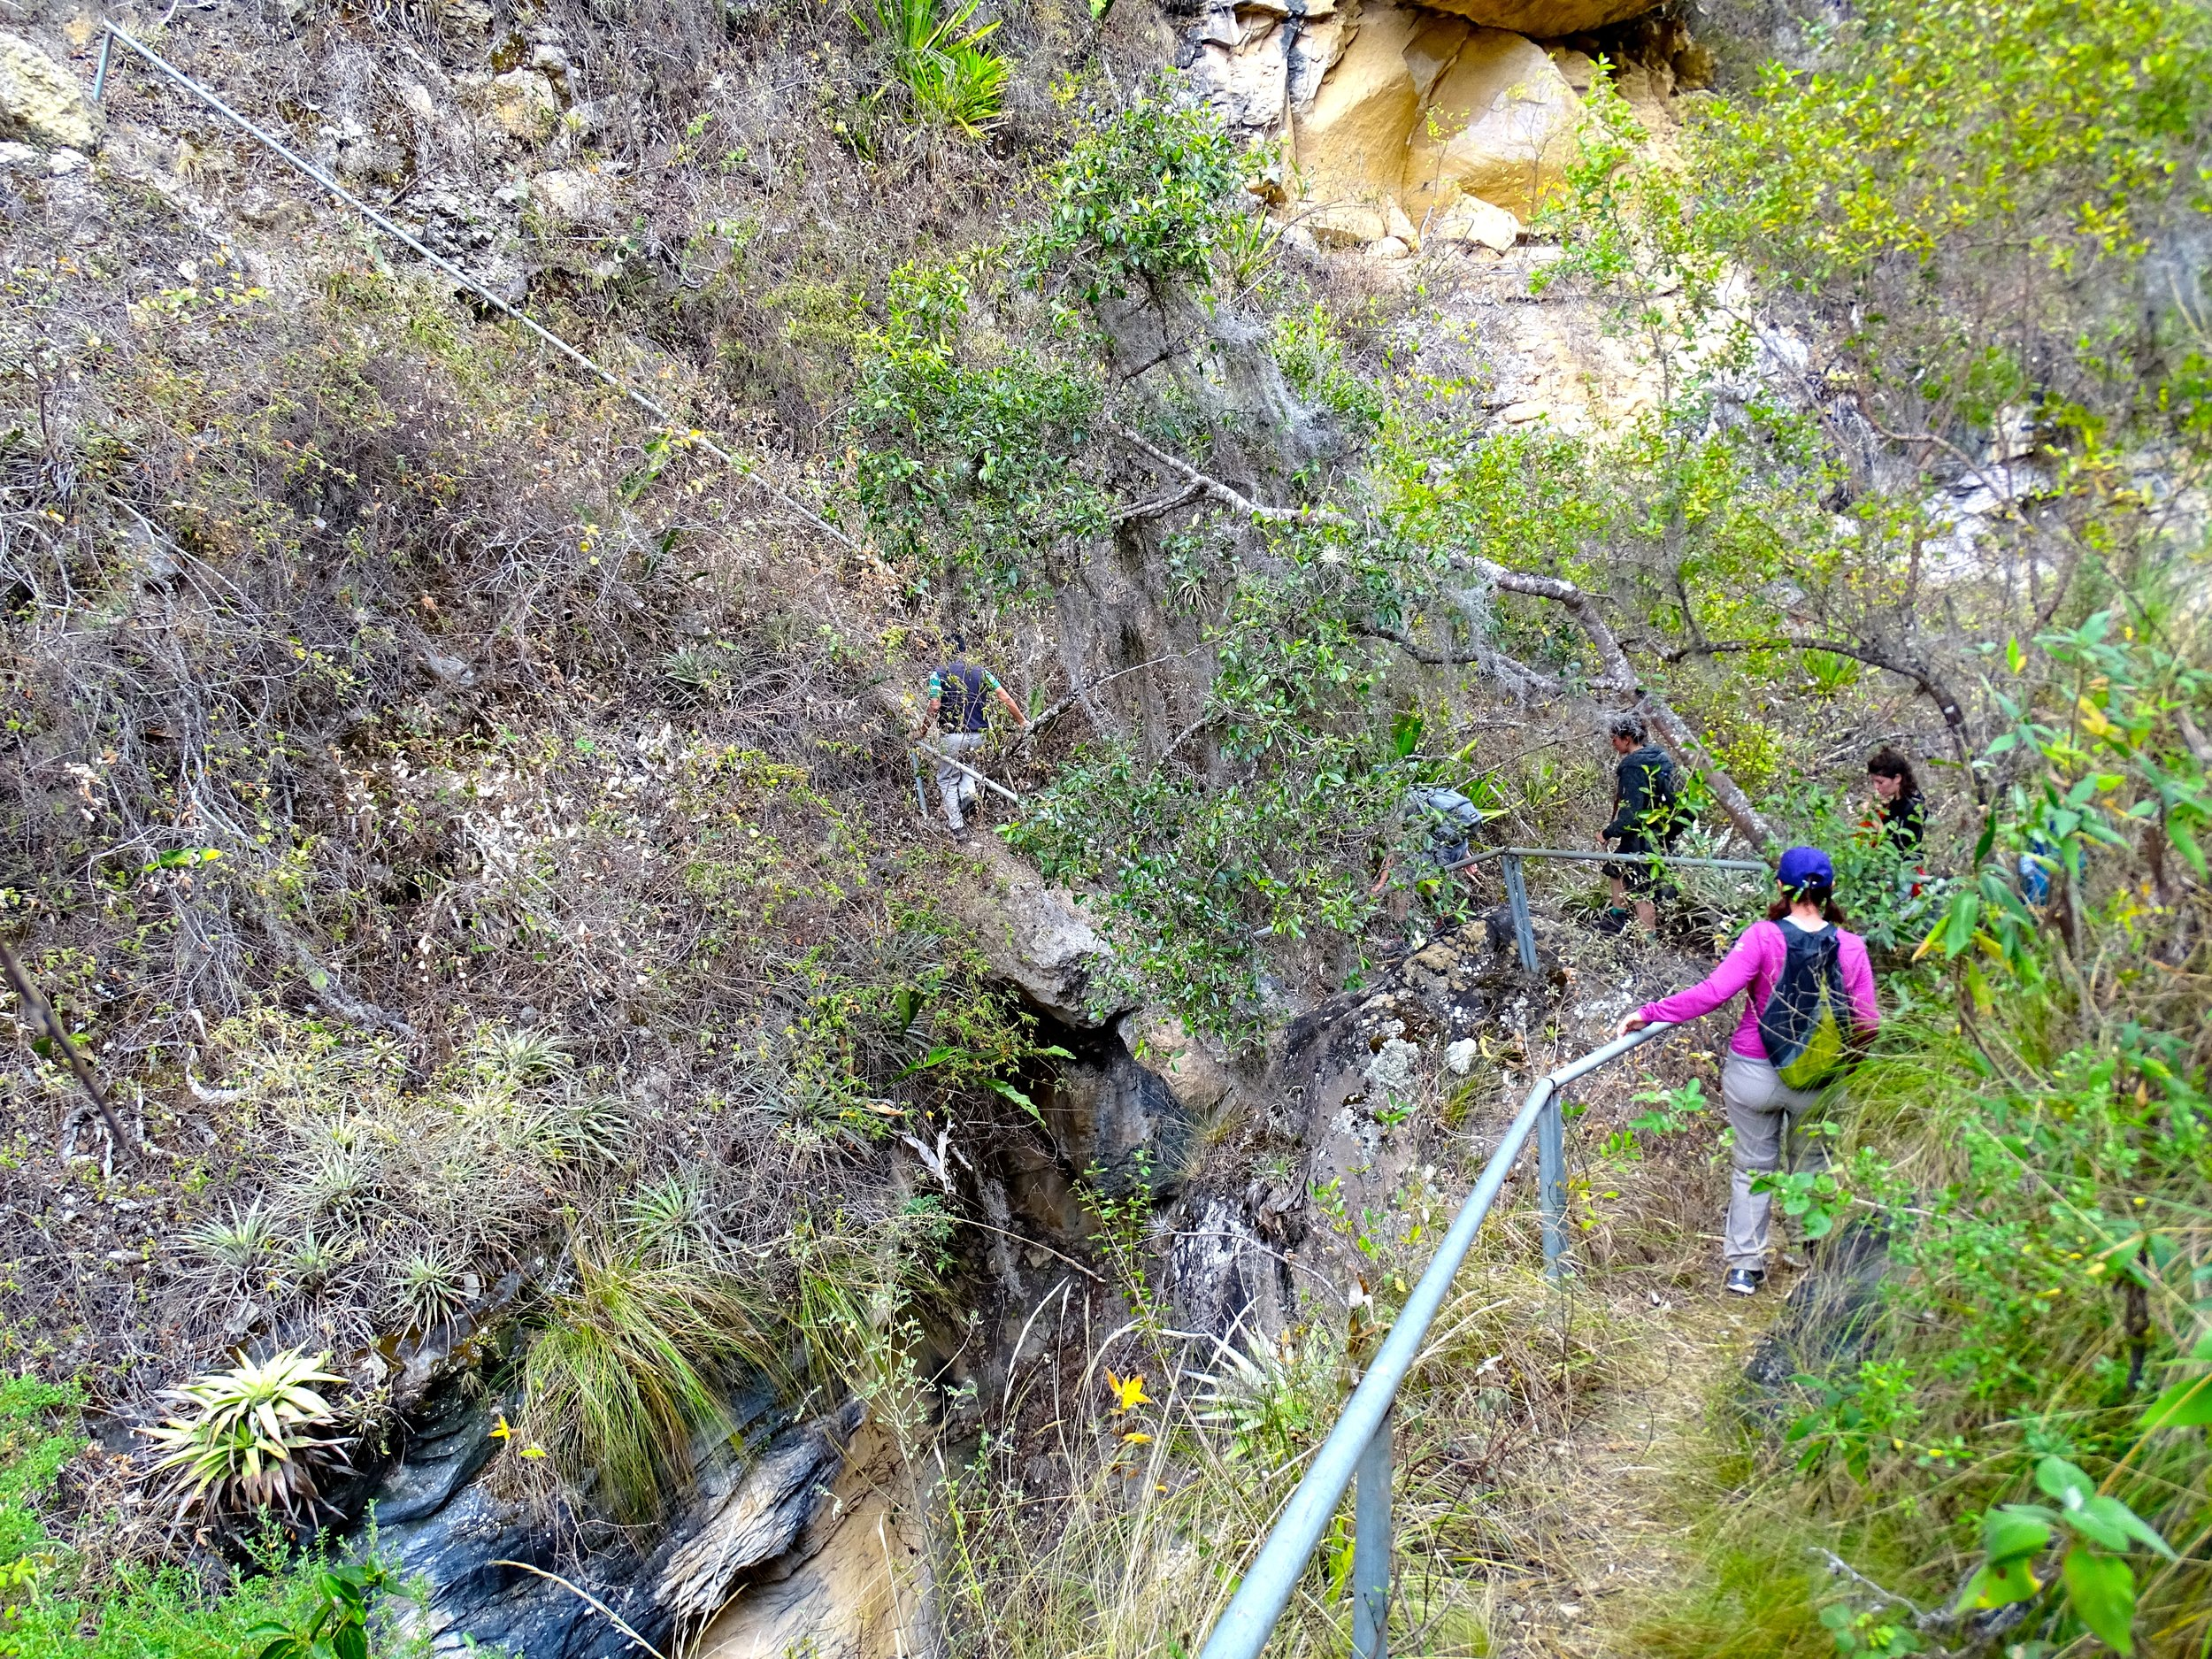 It's difficult to tell, but ahead of Jalene are two big boulders that have wedged between the narrow canyon walls, forming a bridge that we crossed to reach the ruins.  It was the only way in and out.